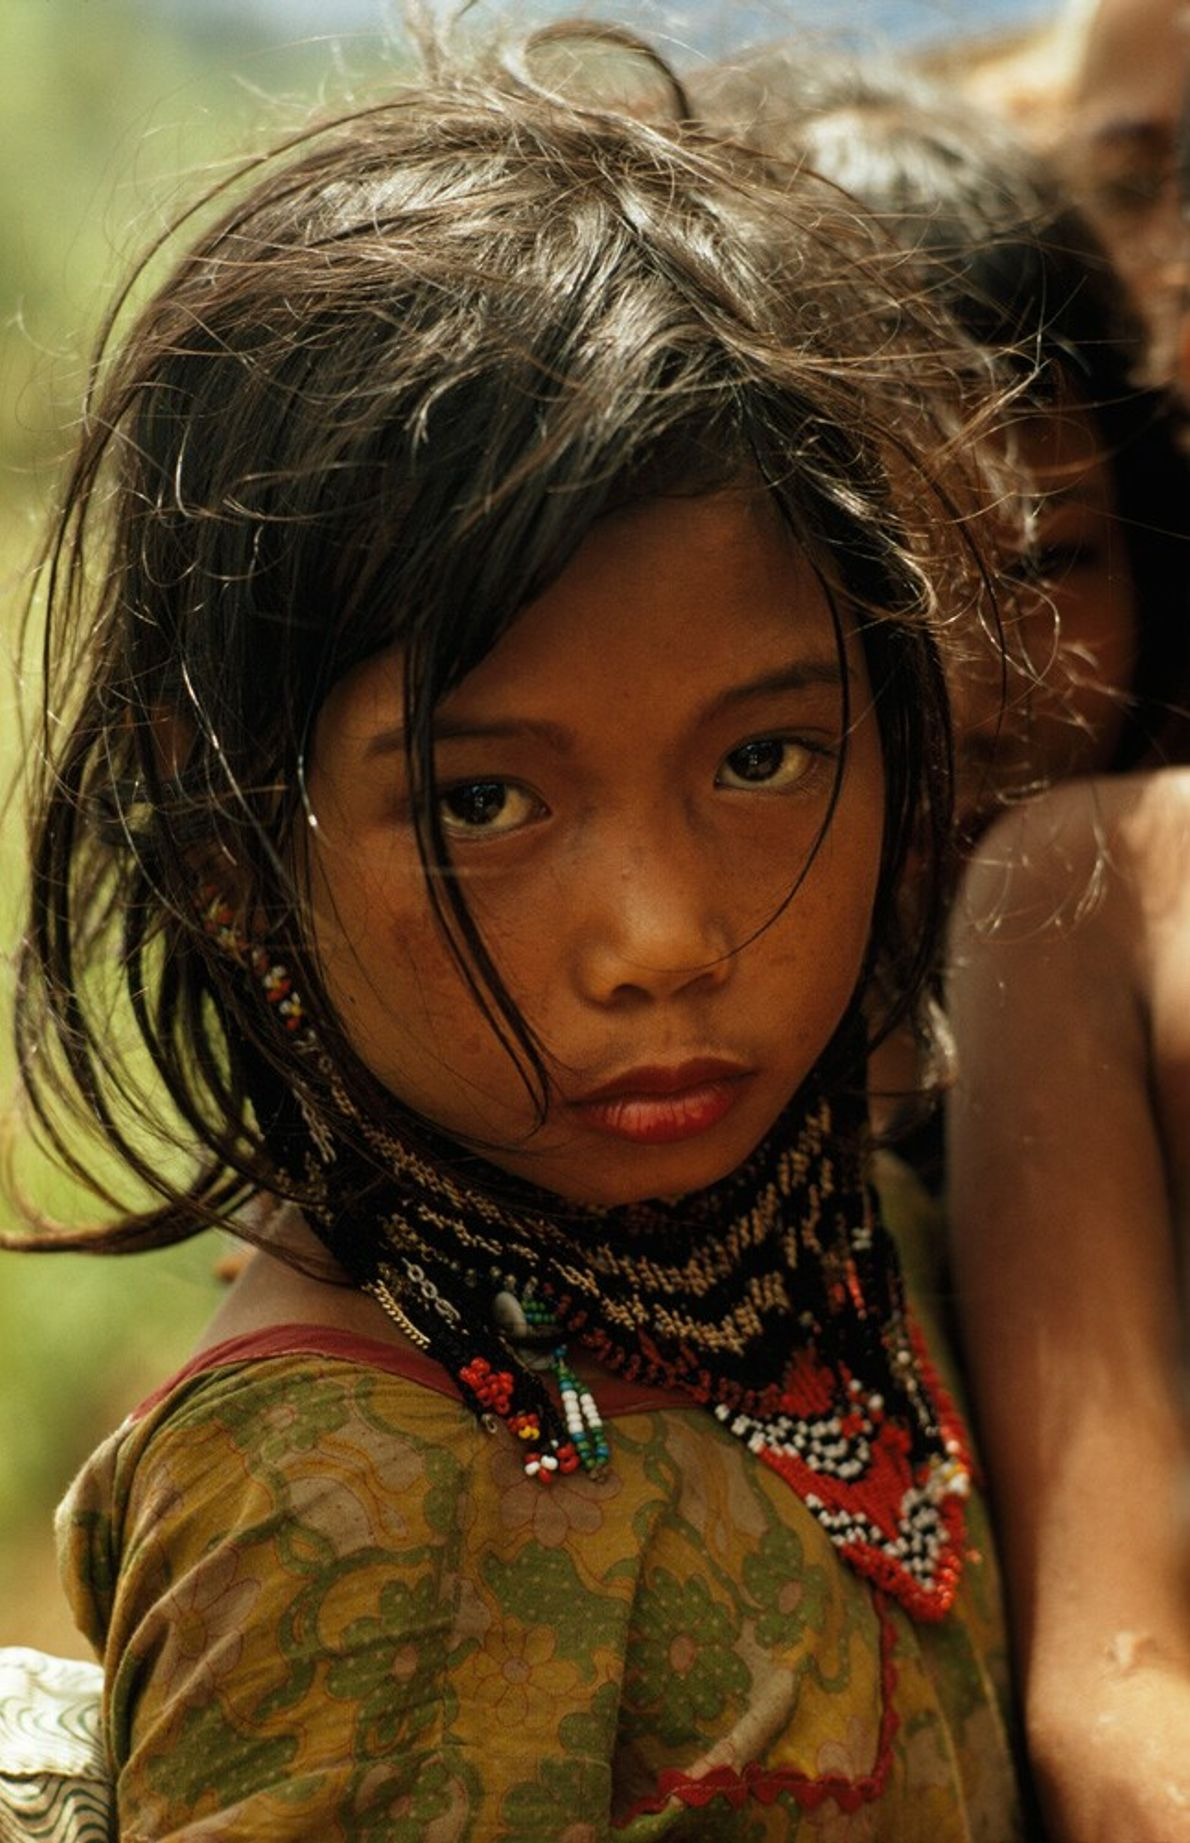 Phillippines, 1971: a young Ubo girl, dressed in traditional jewellery, on Mindanao Island. The Ubo are ...